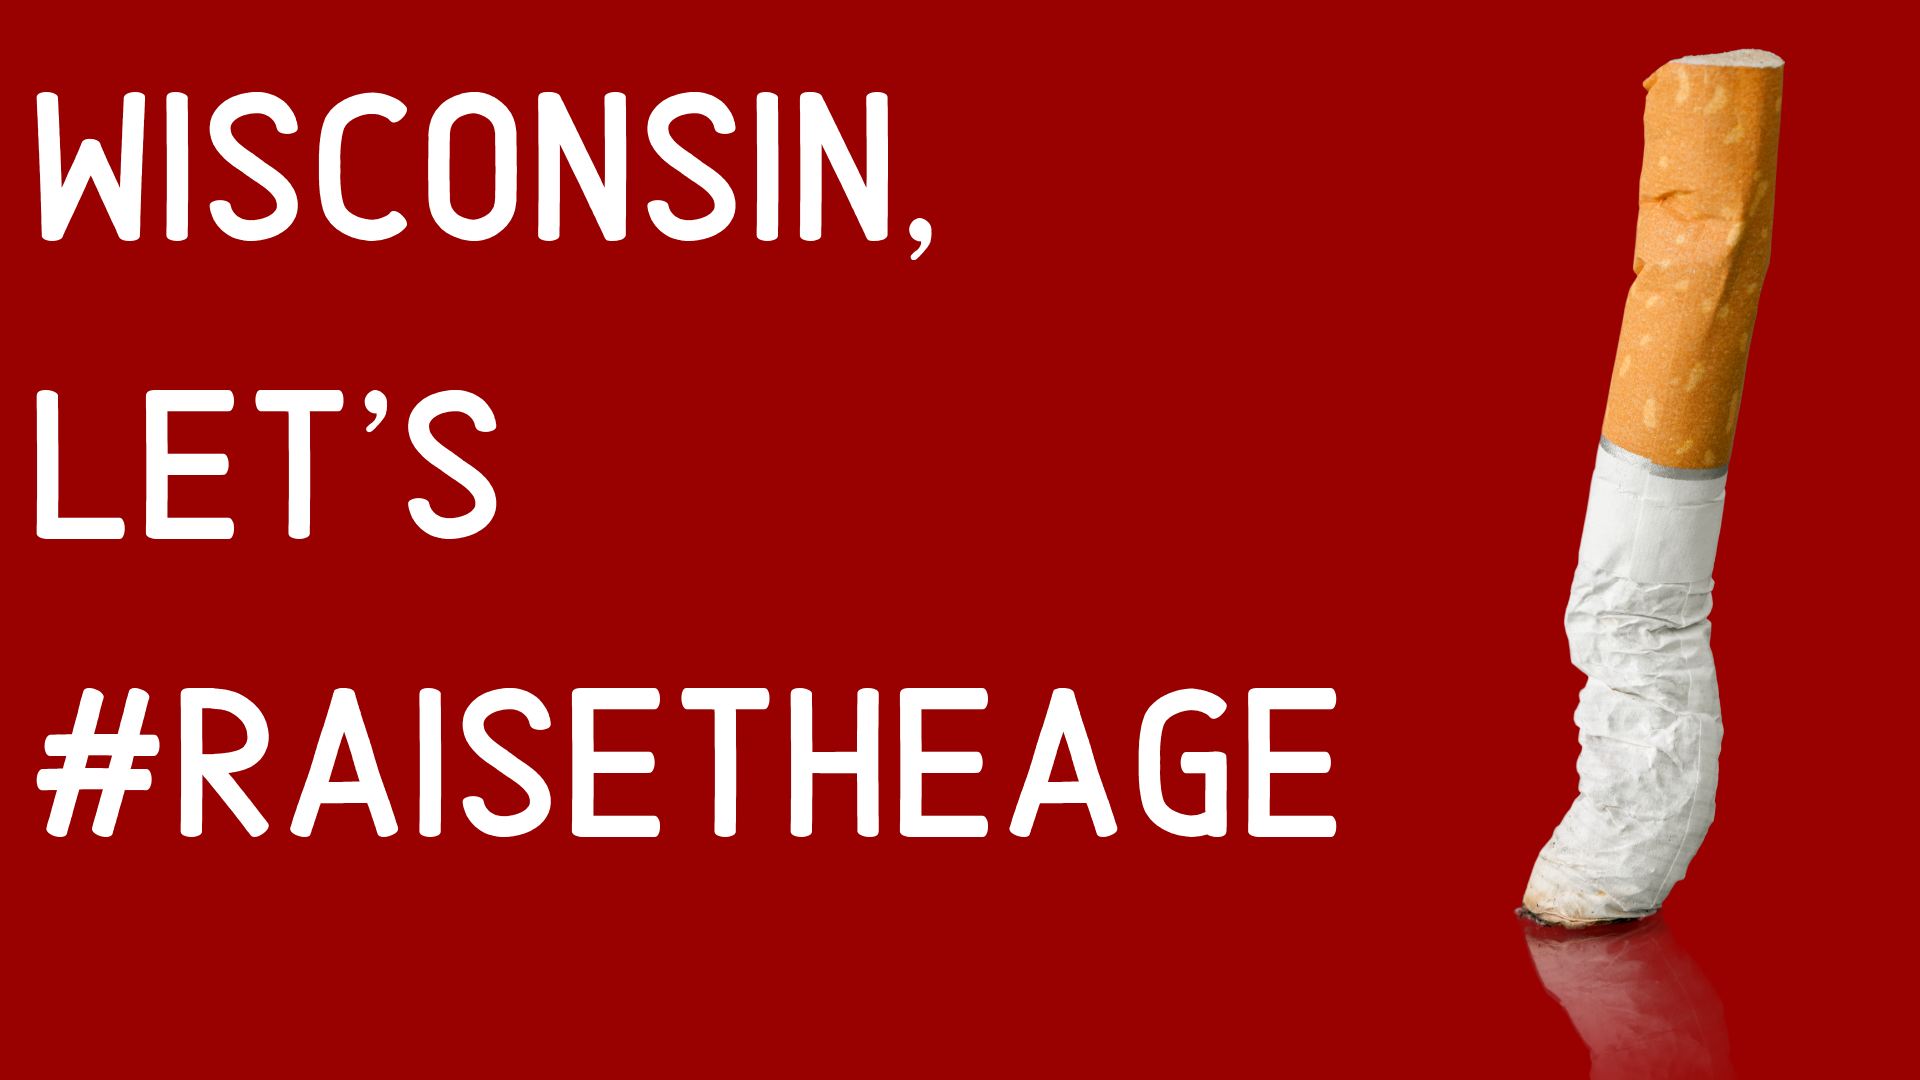 Raise the Age, Wisconsin!